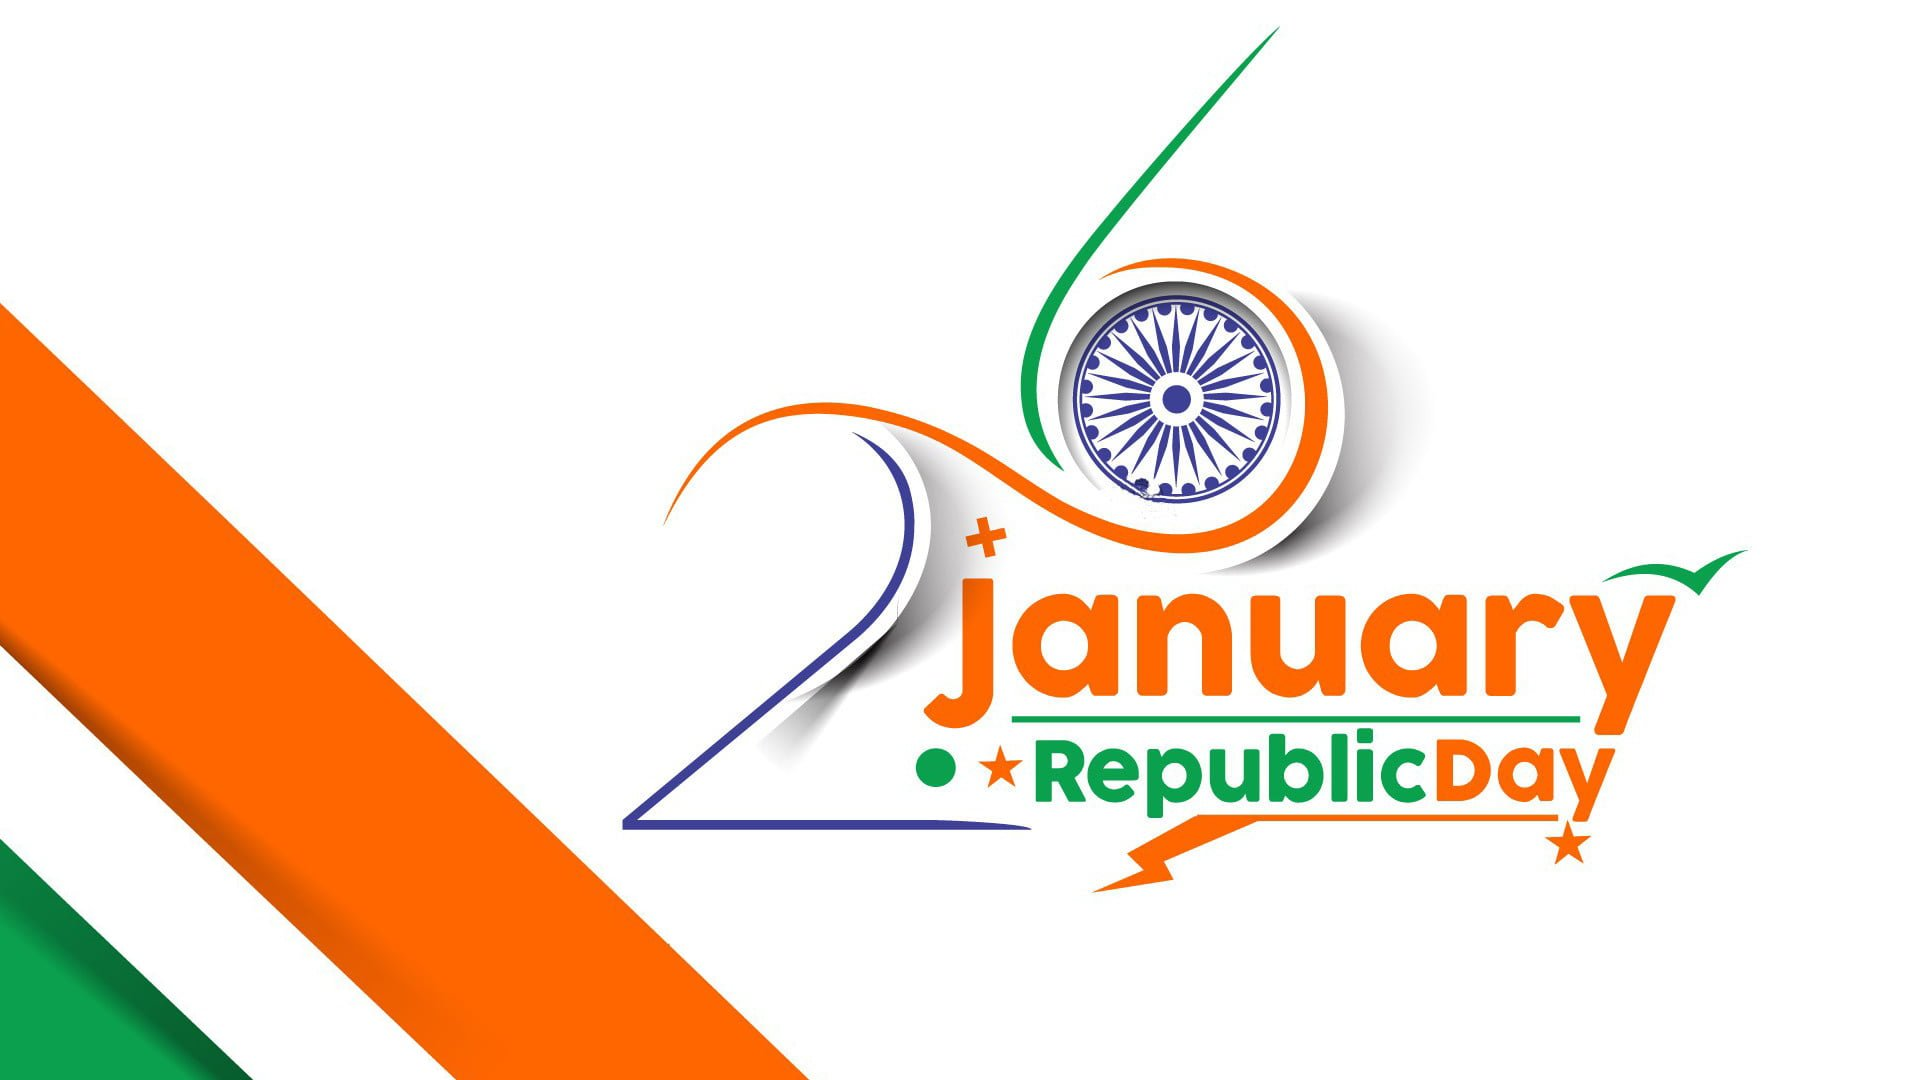 26 January Republic Day 2019 Background Png Download 2019